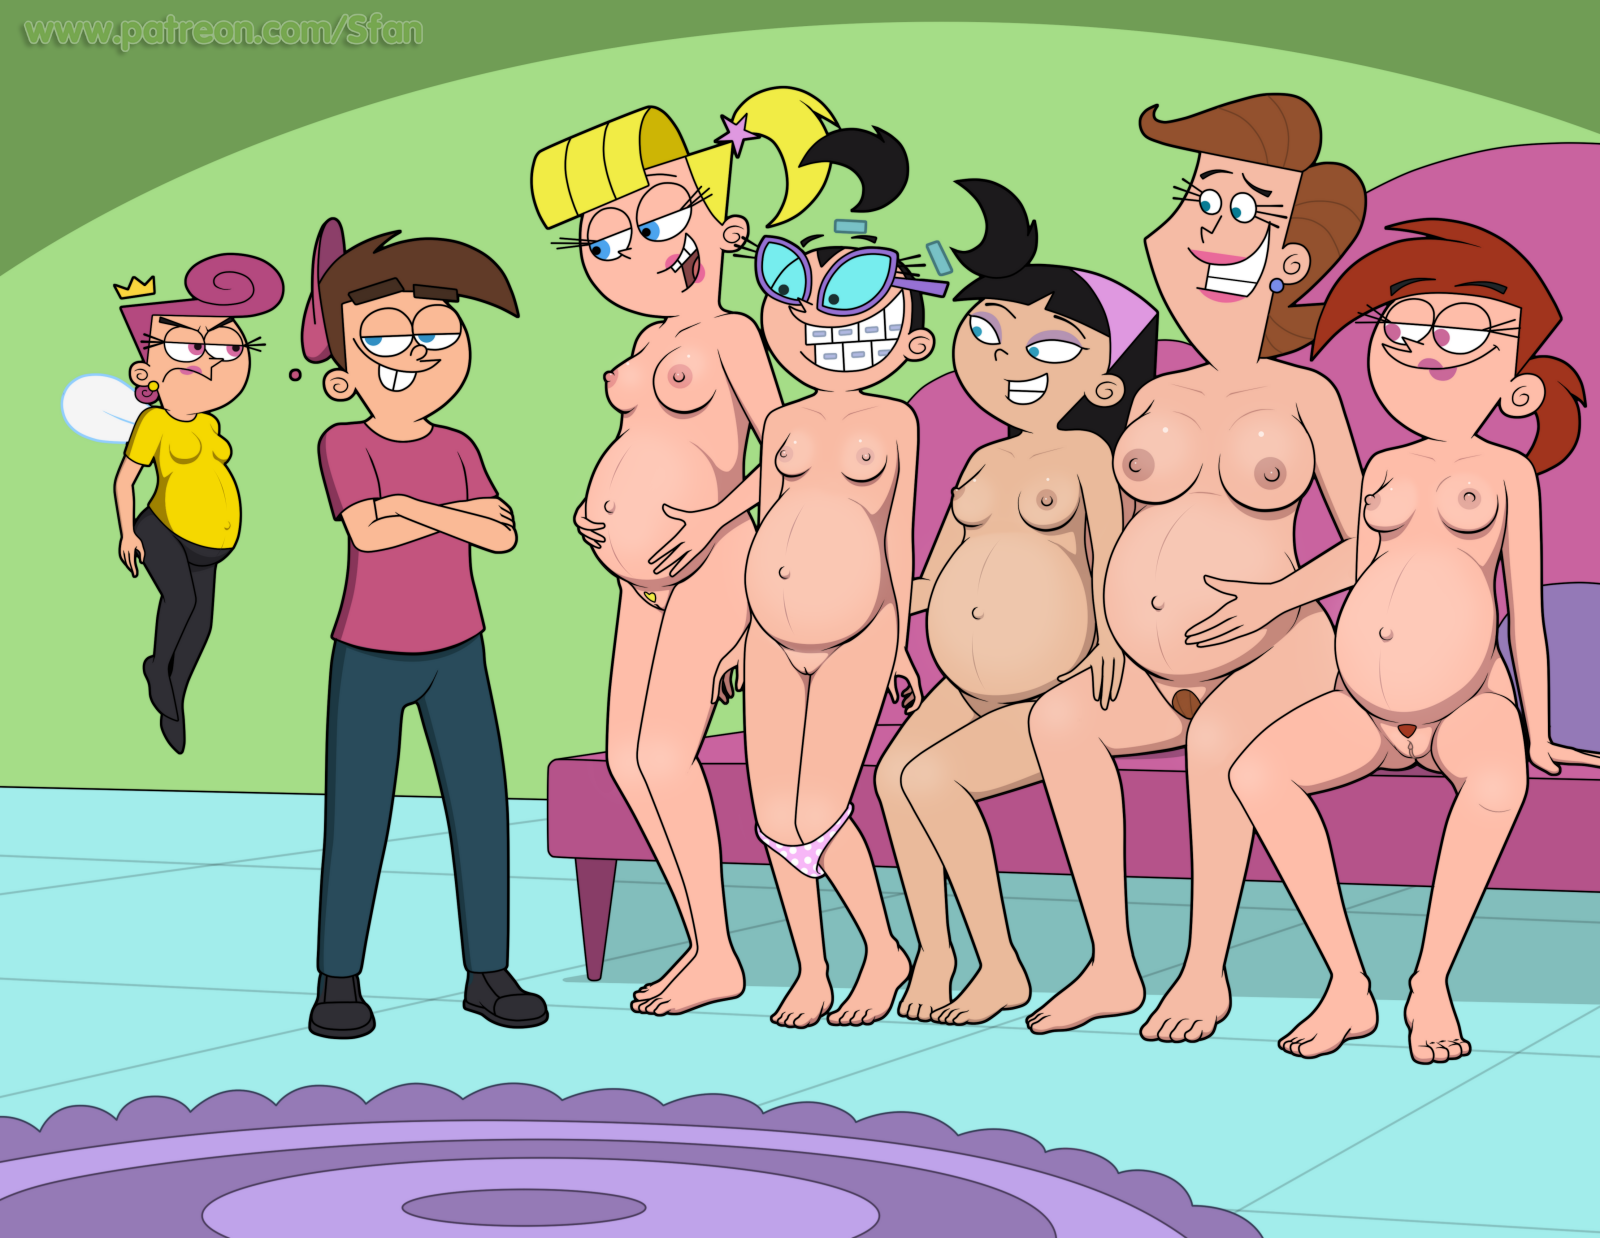 But Fairly odd parents showing pussy share